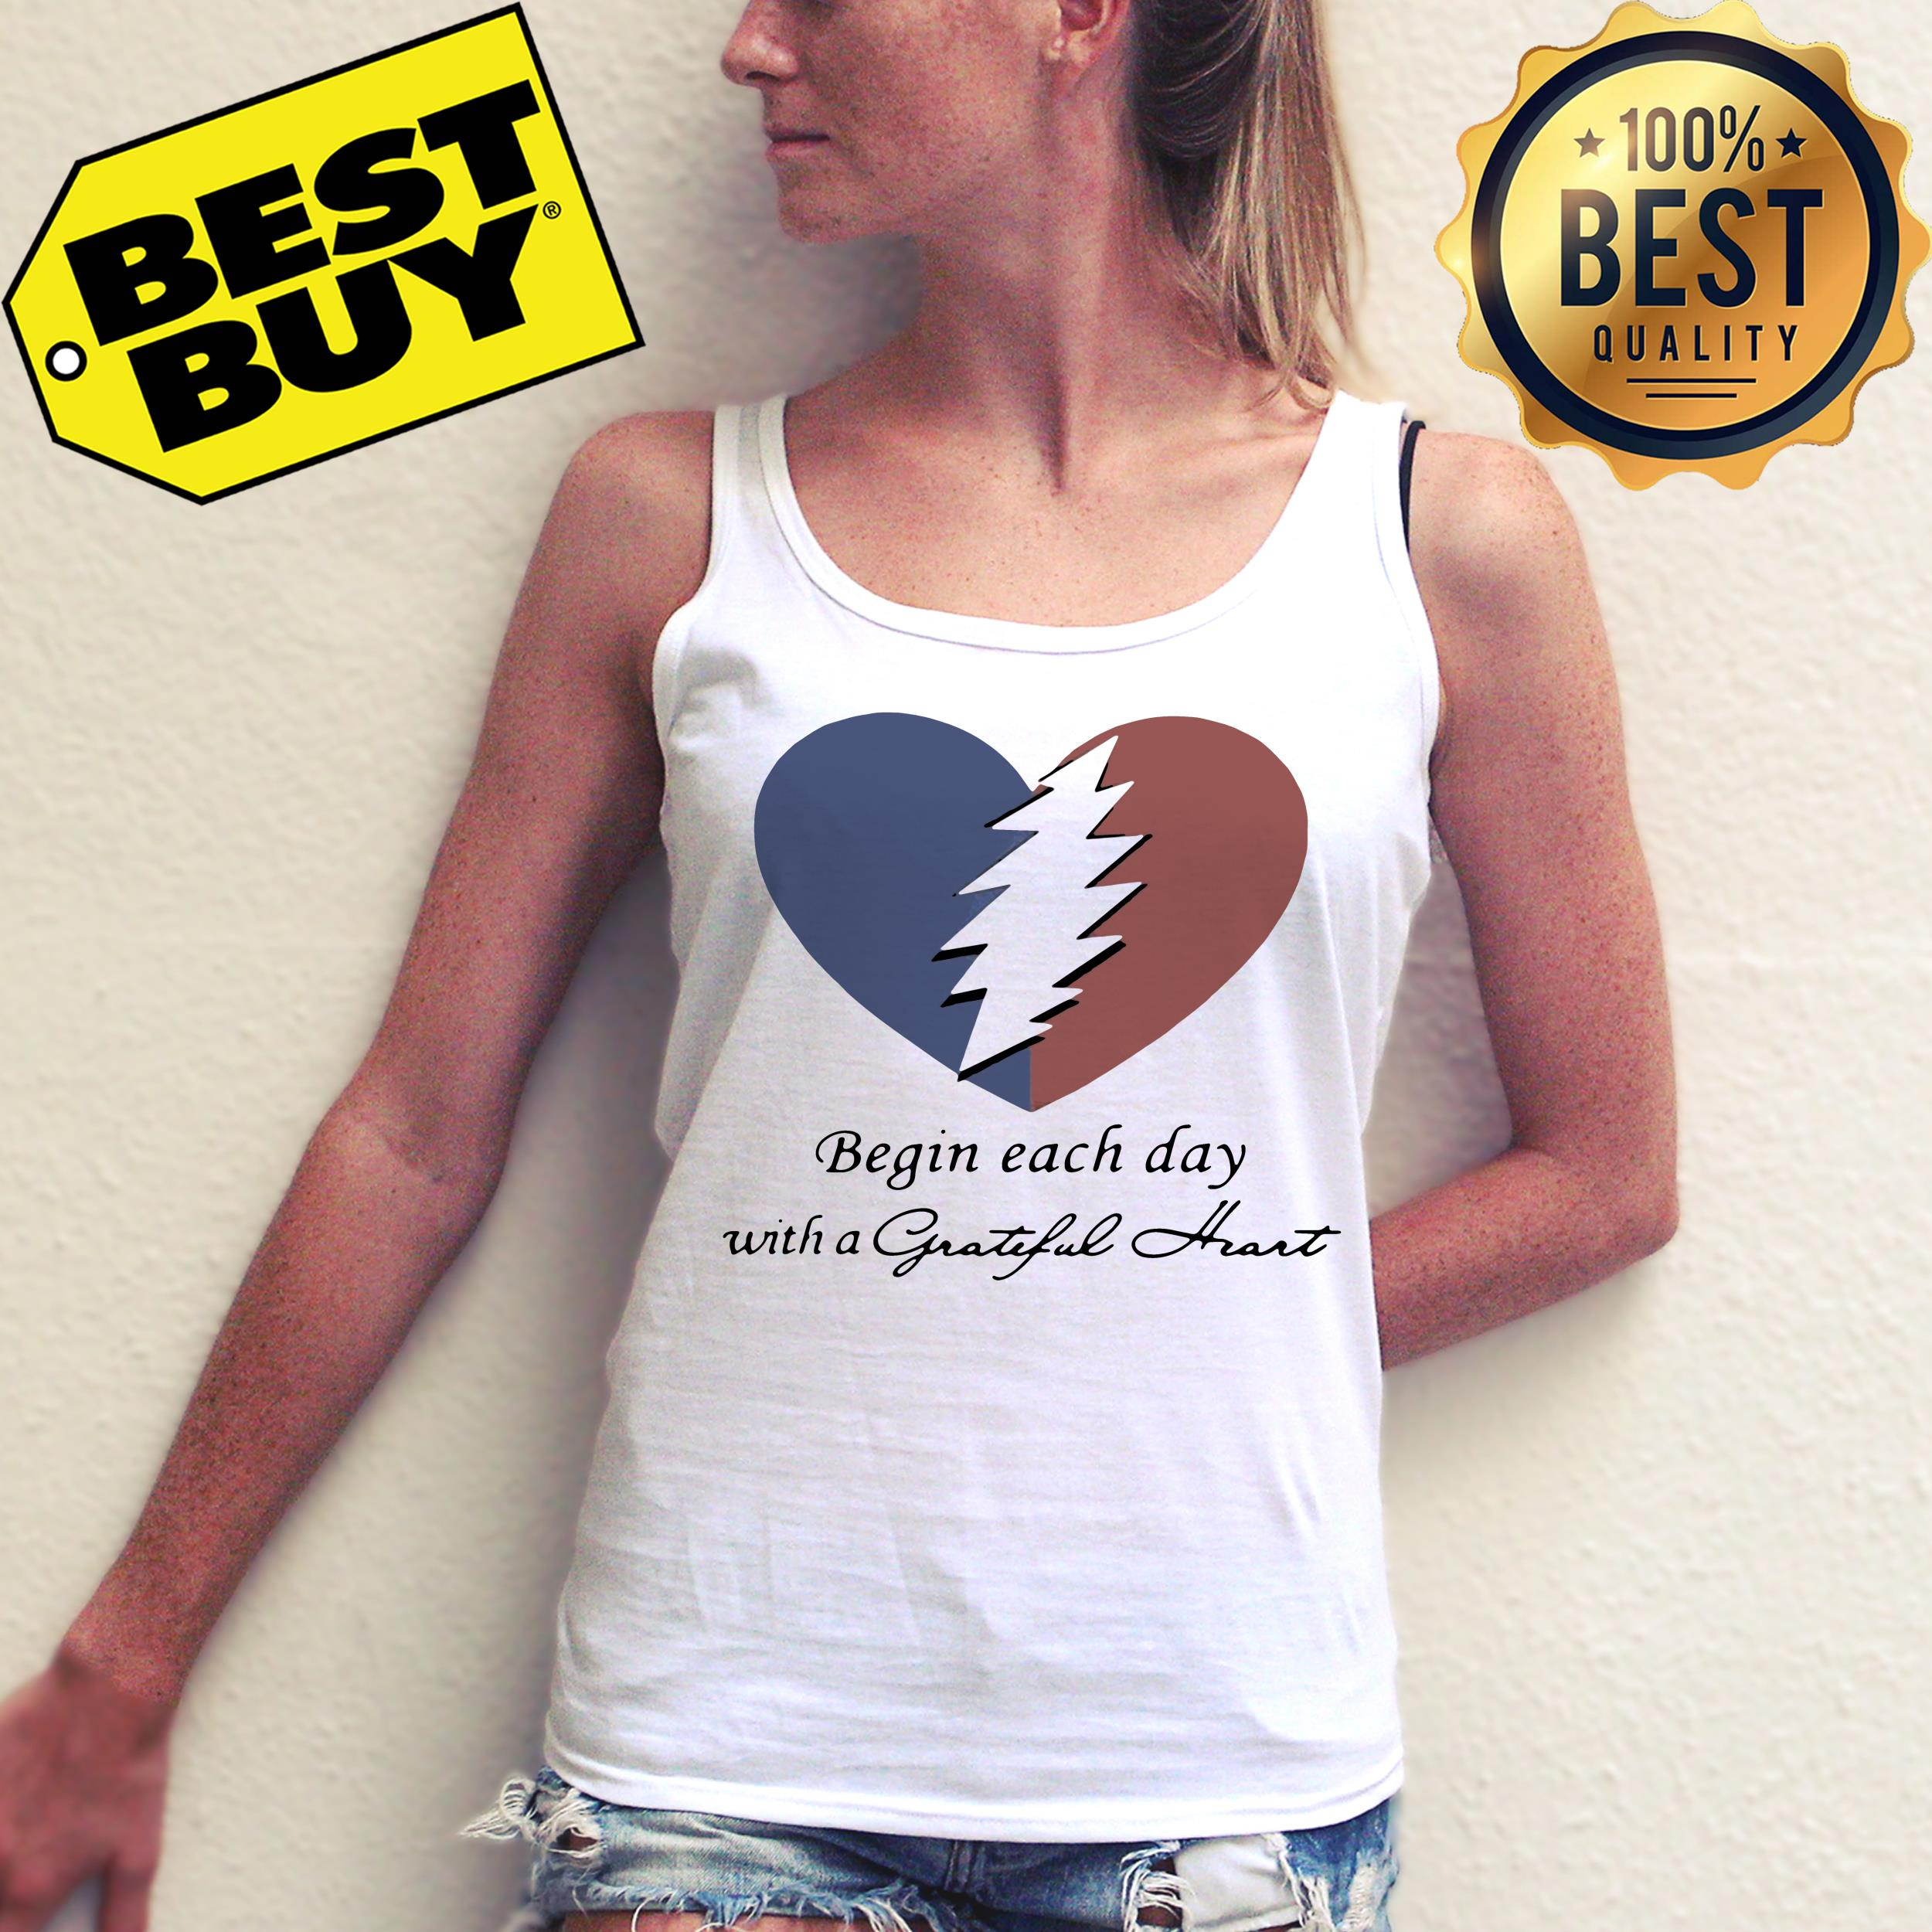 Begin each day with a grateful heart tank top